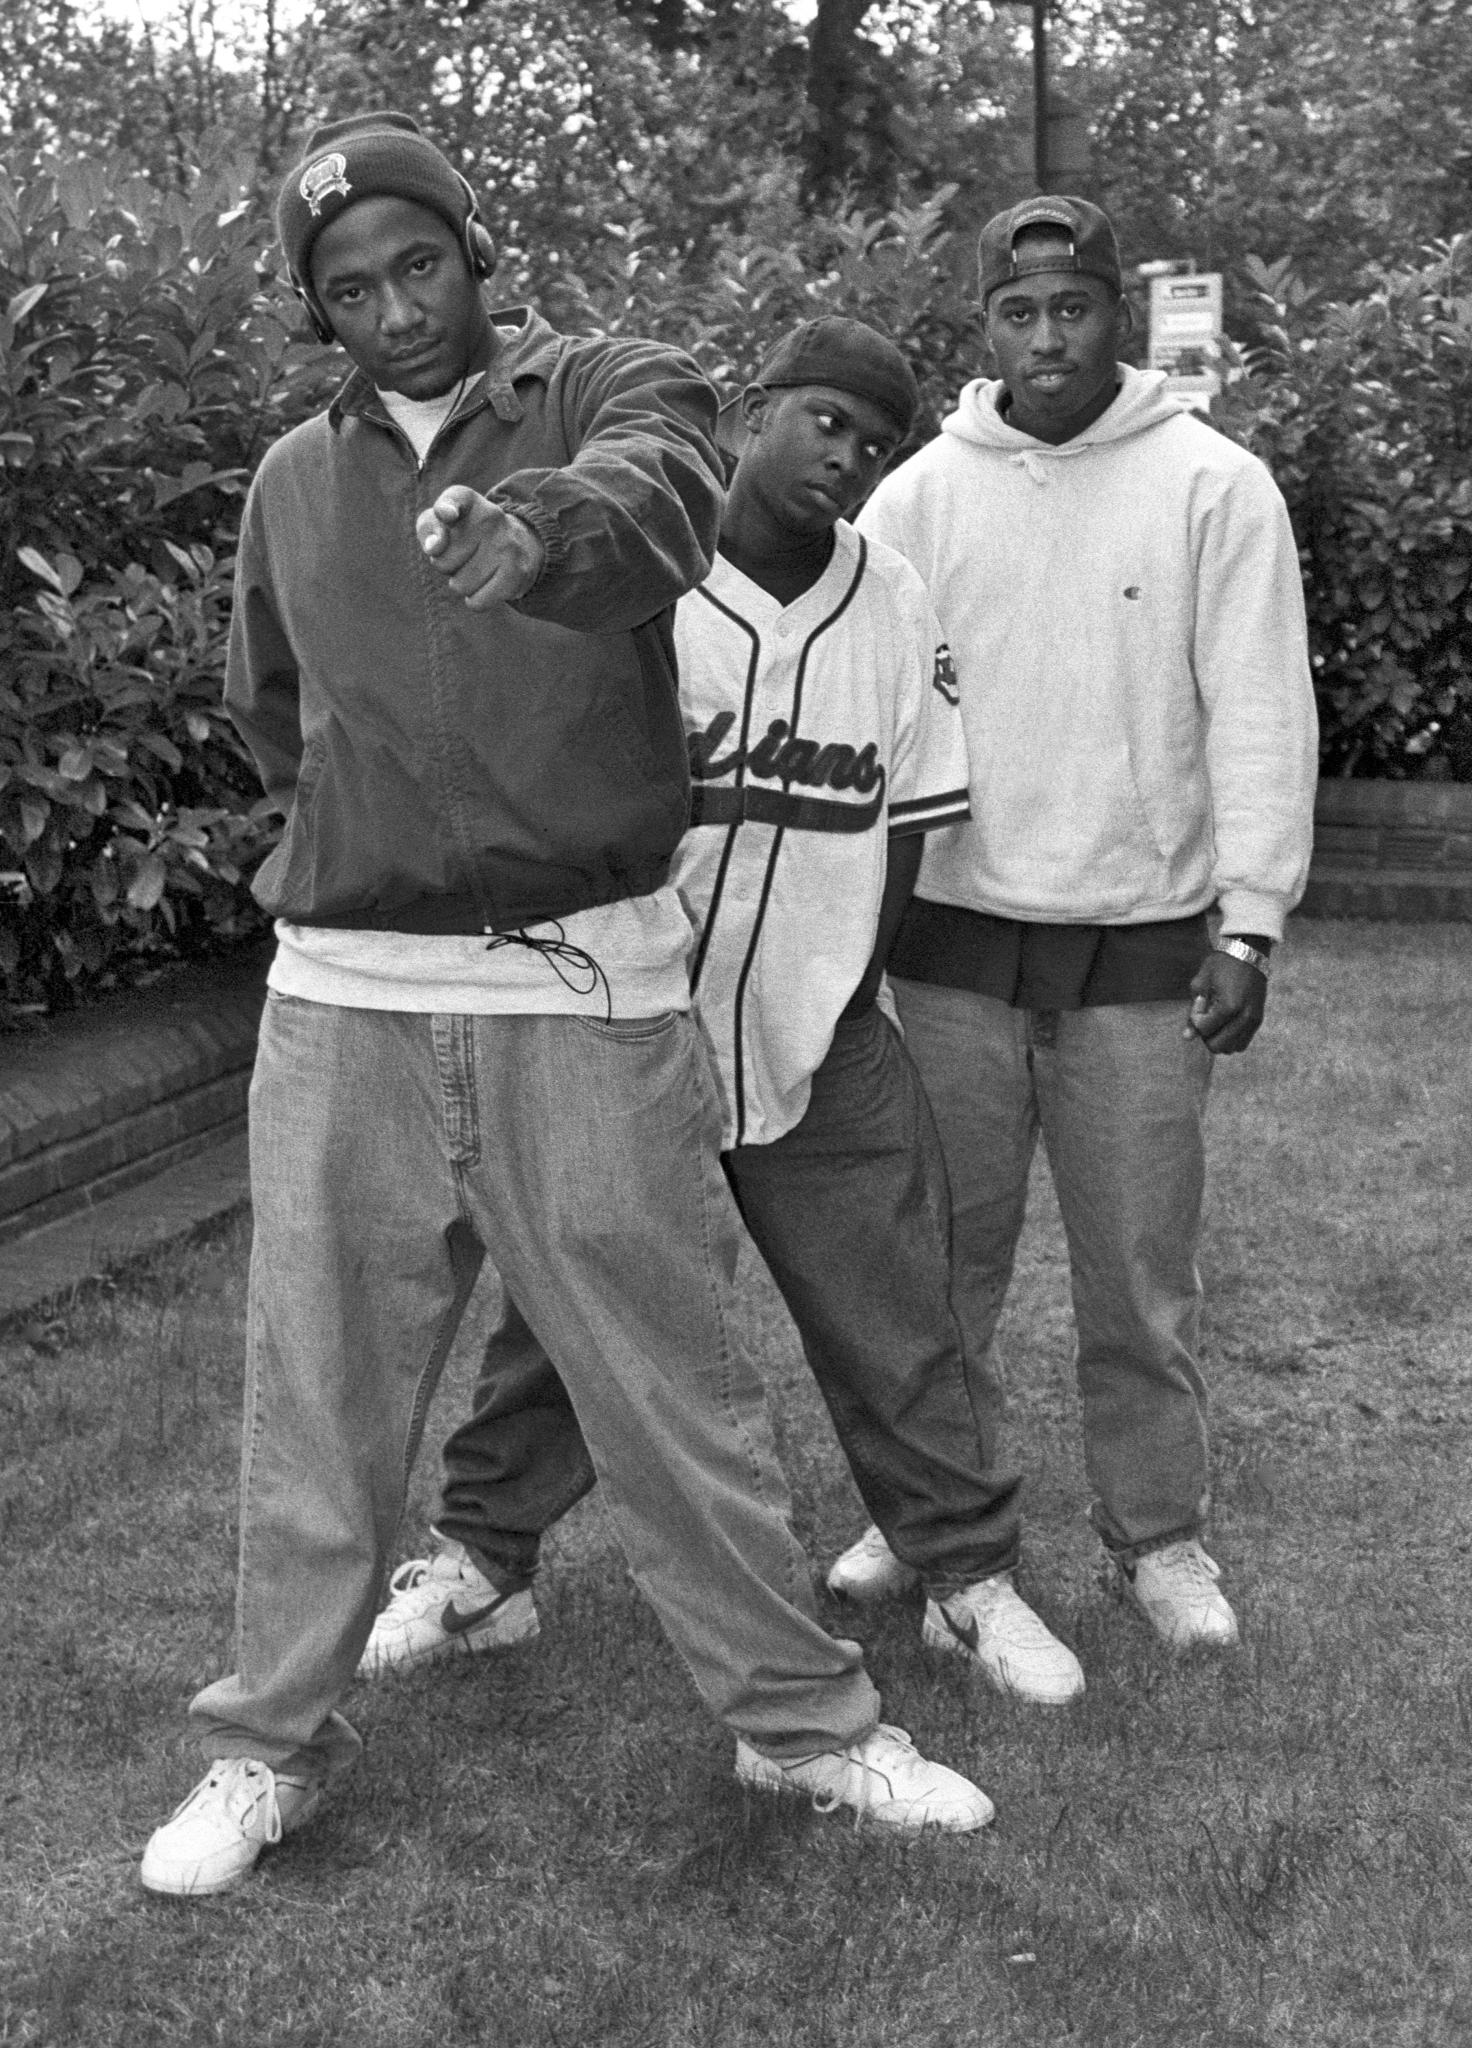 Family Of A Tribe Called Quest's Phife Dawg Releases Statement on His Passing